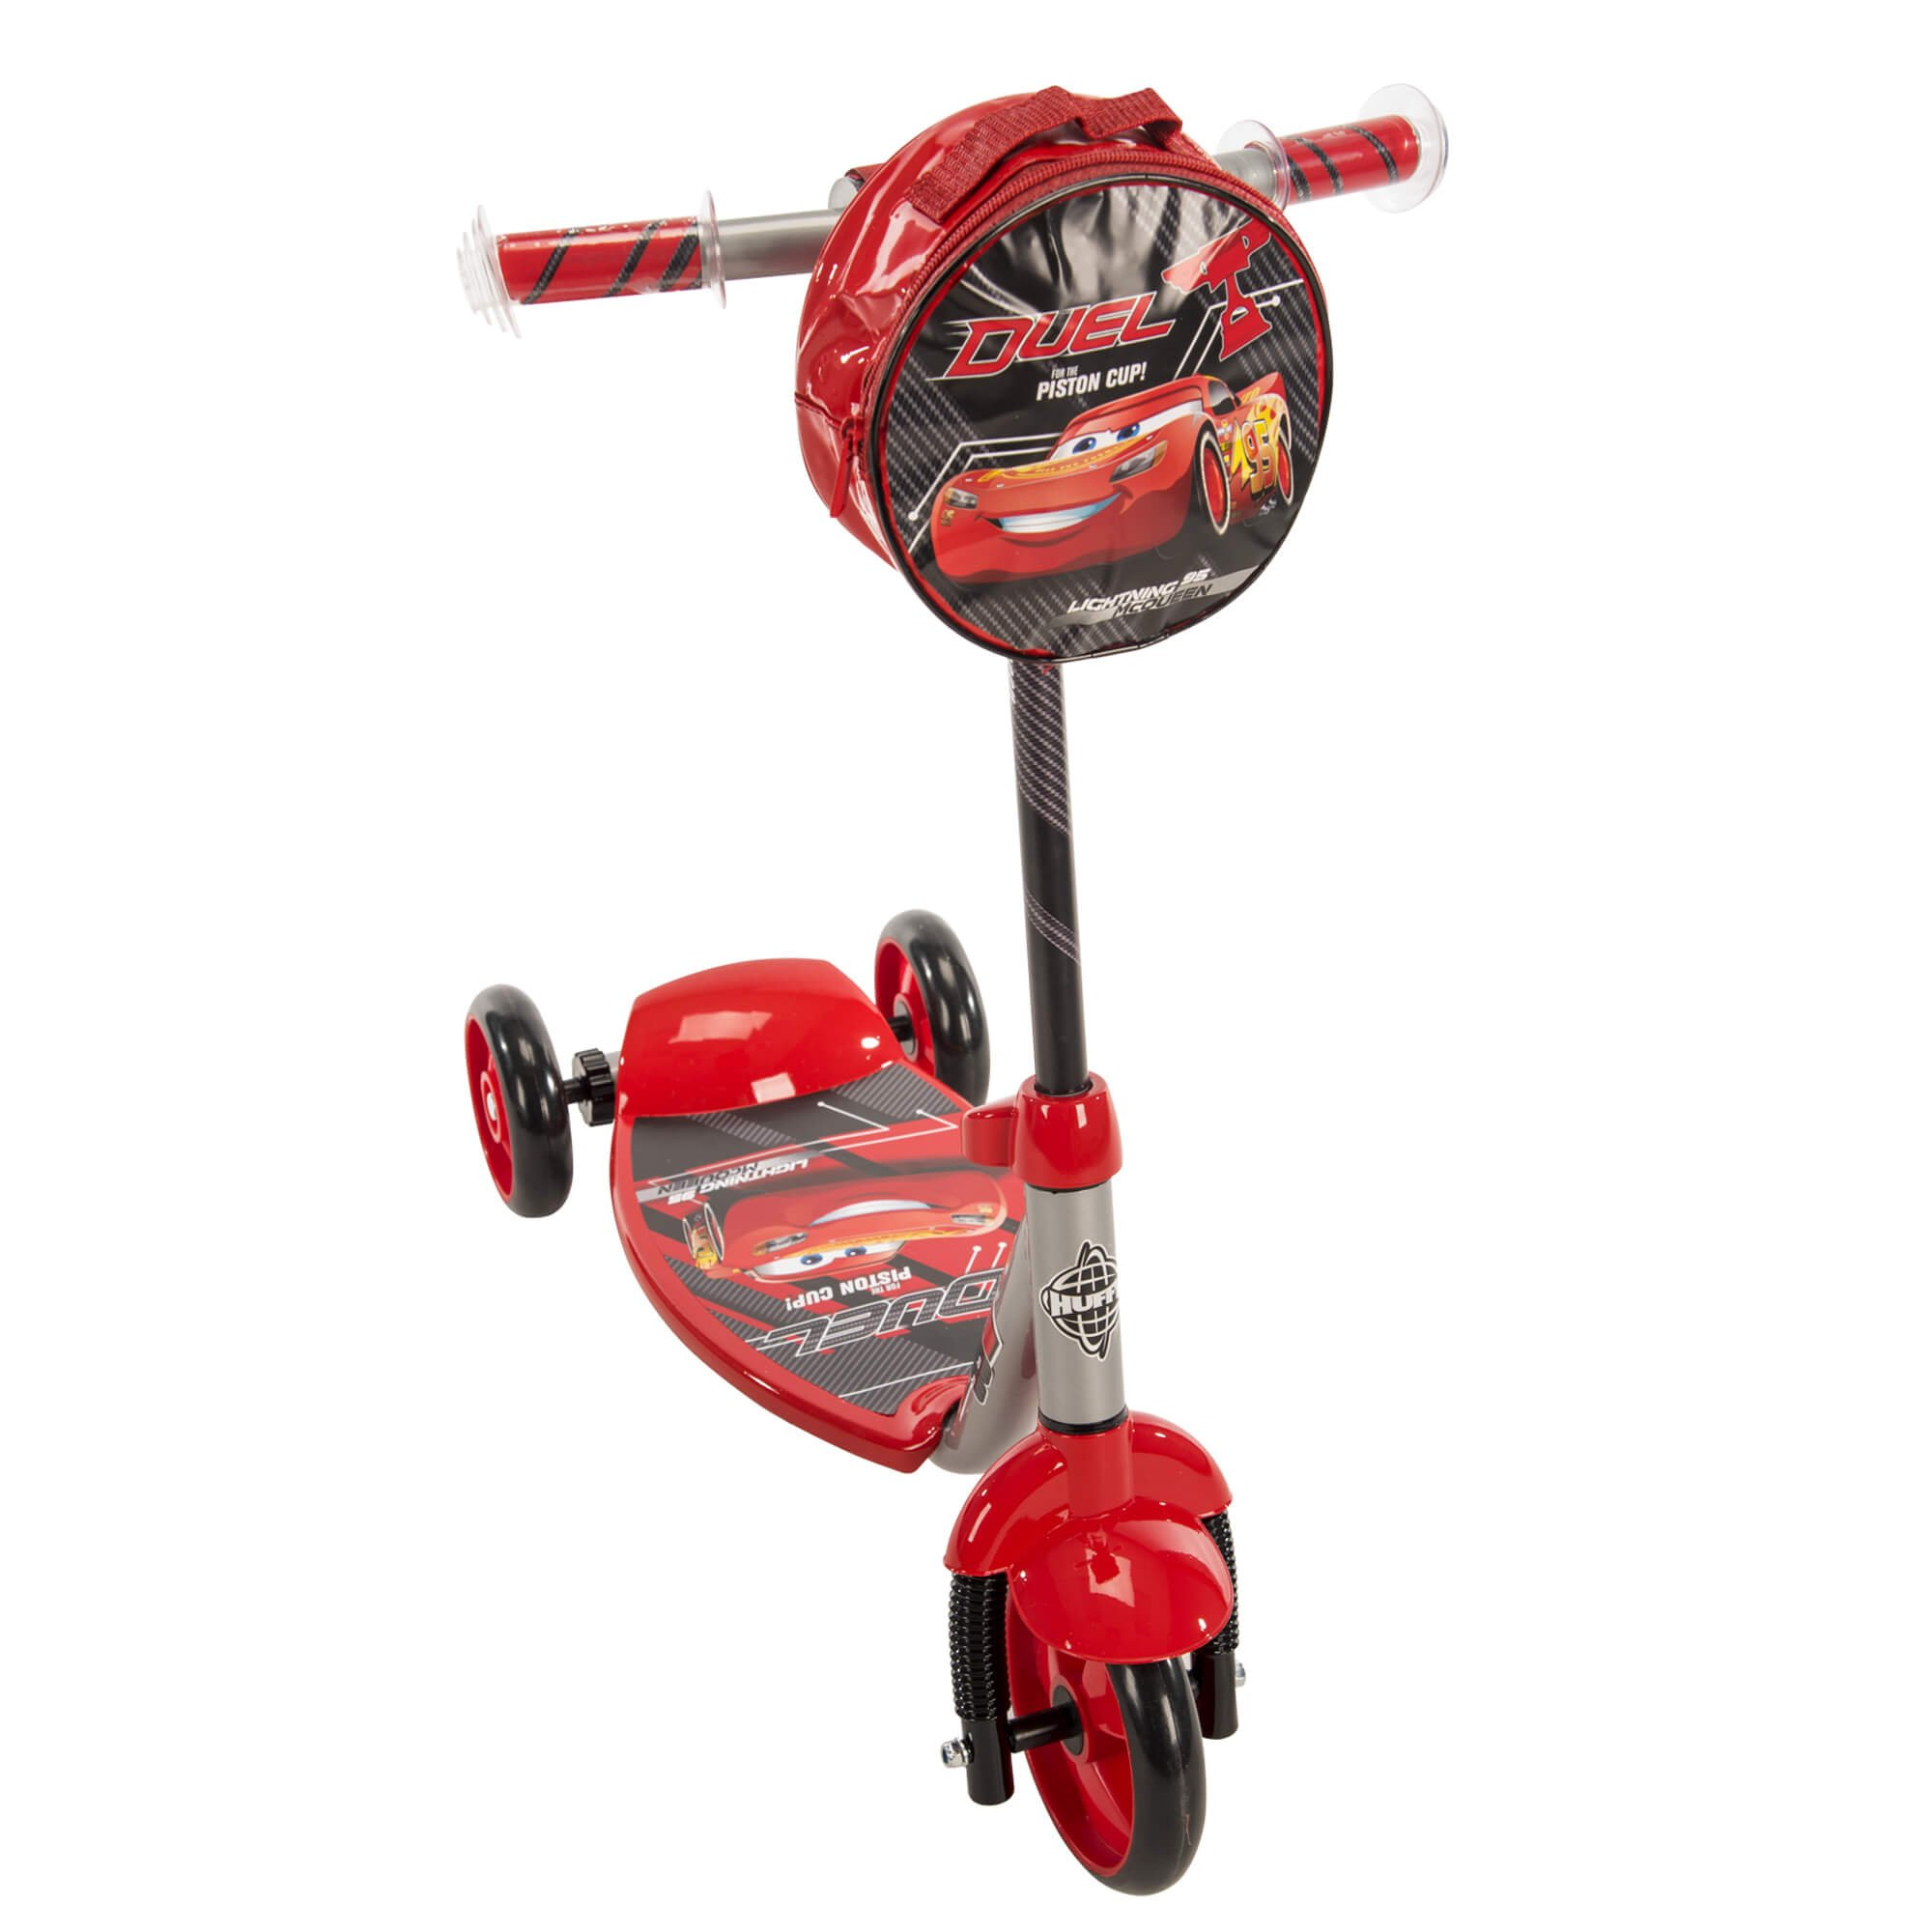 Huffy Disney Pixar Cars 3 Boys 3-Wheel Preschool Scooter by Huffy